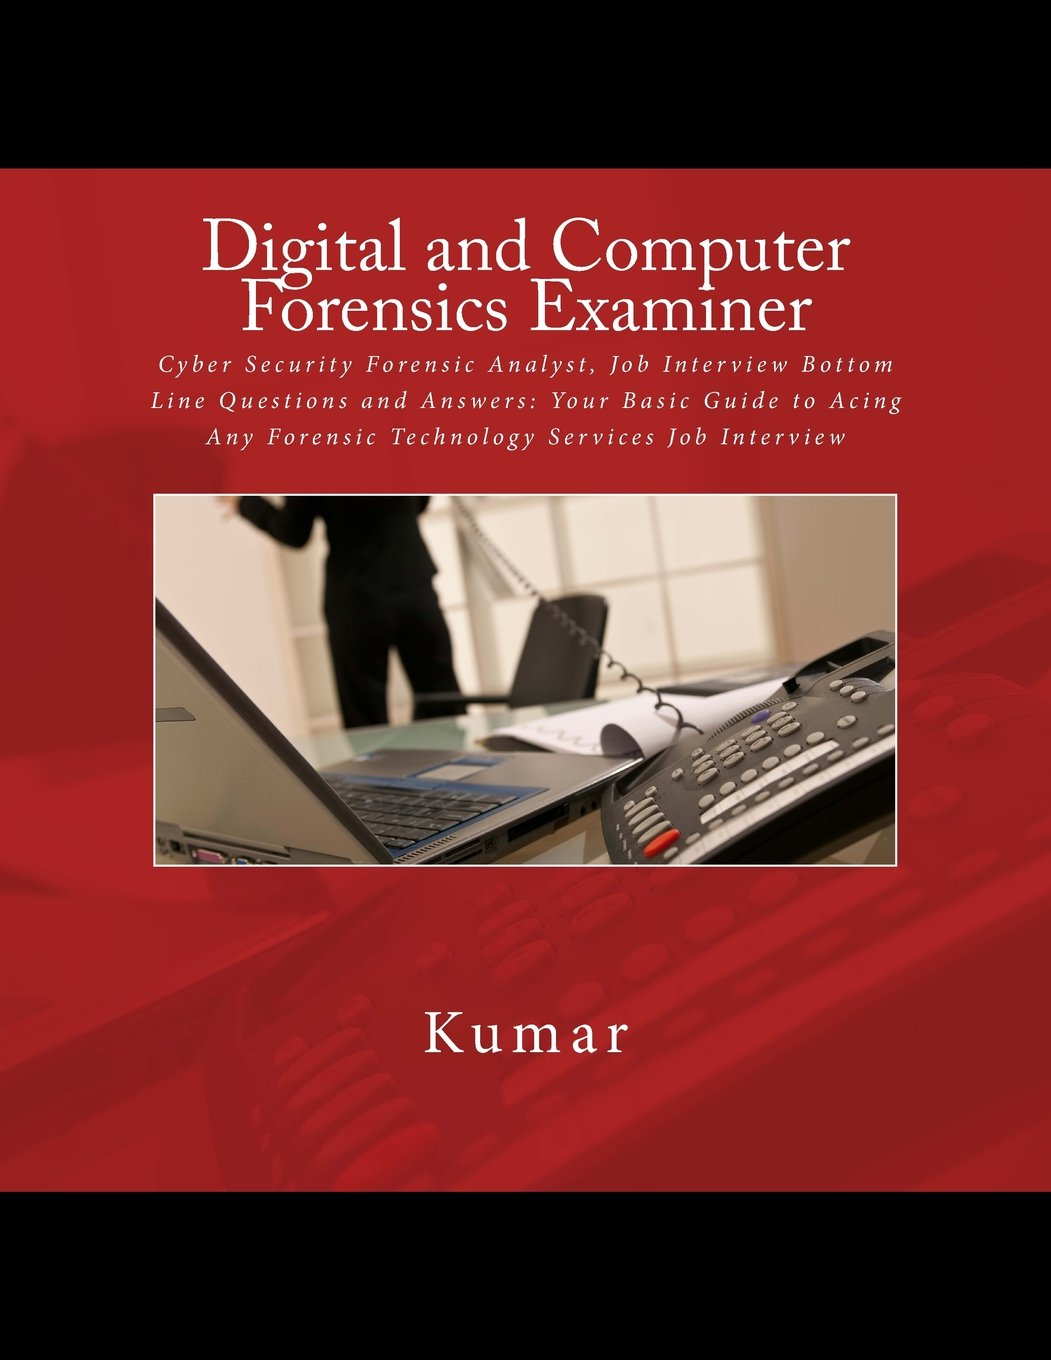 Digital And Computer Forensics Examiner Cyber Security Forensic Analyst Job Interview Bottom Line Questions And Answers Your Basic Guide To Acing Any Forensic Technology Services Job Interview Kumar 9781537794303 Amazon Com Books